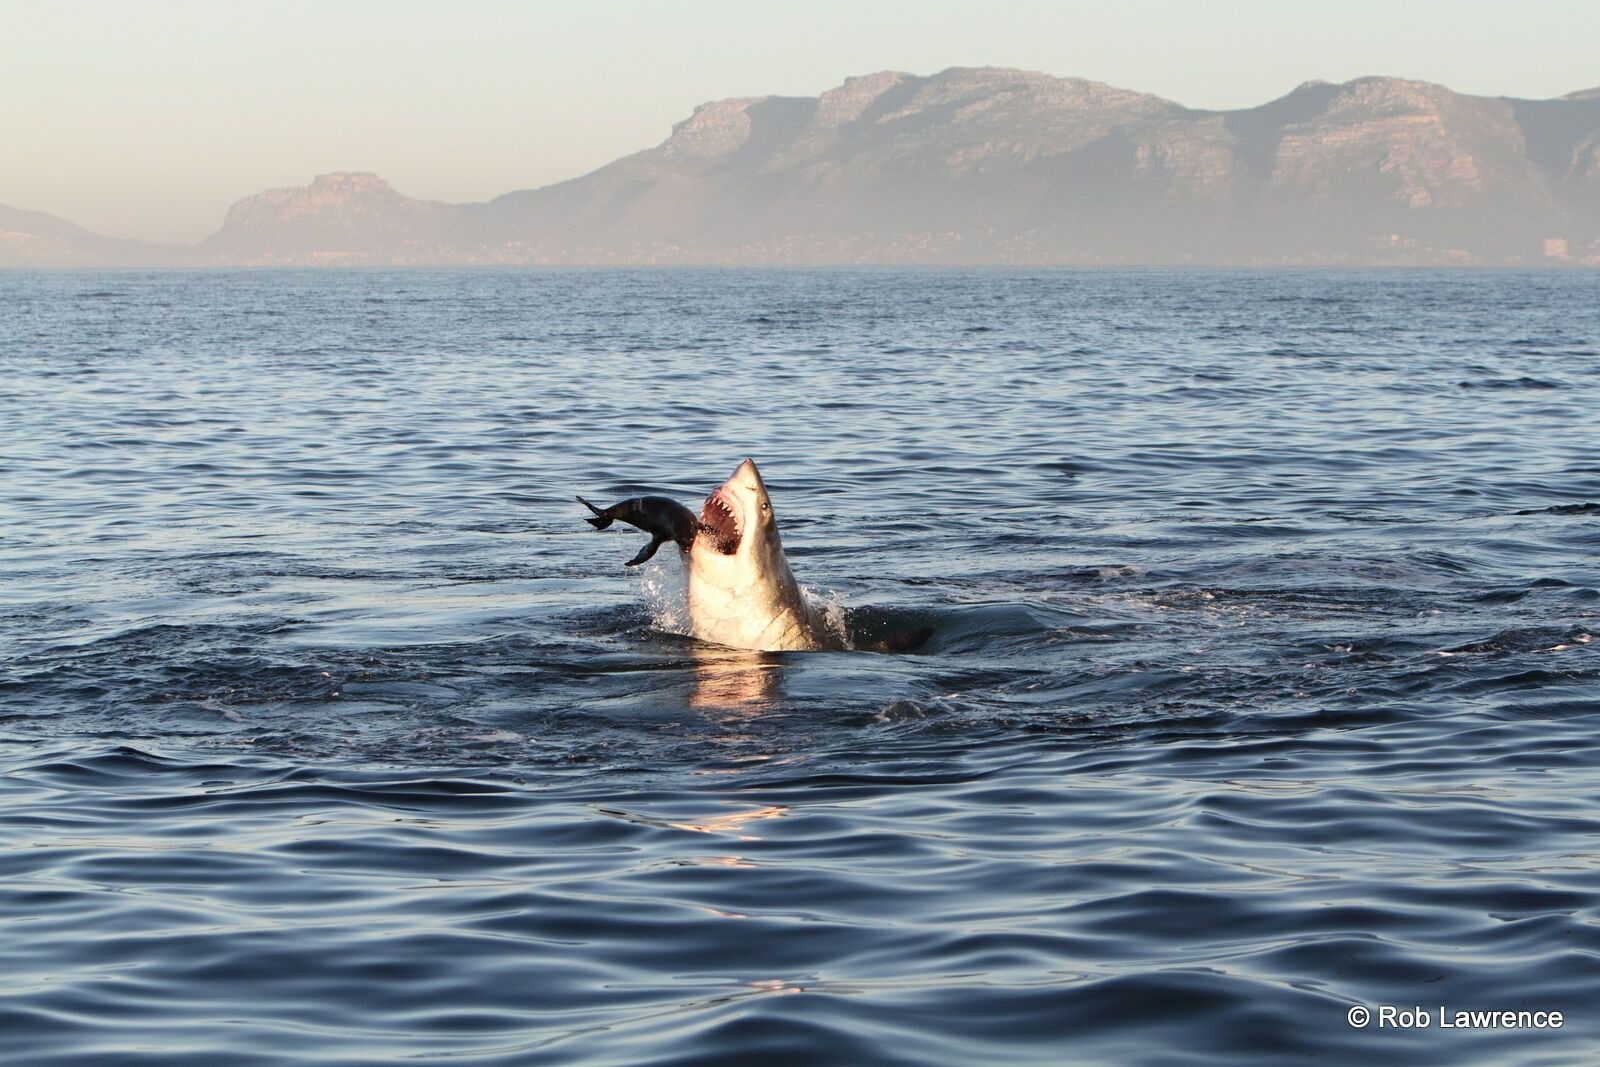 Natural predation of a Great White Shark on a Cape Fur Seal